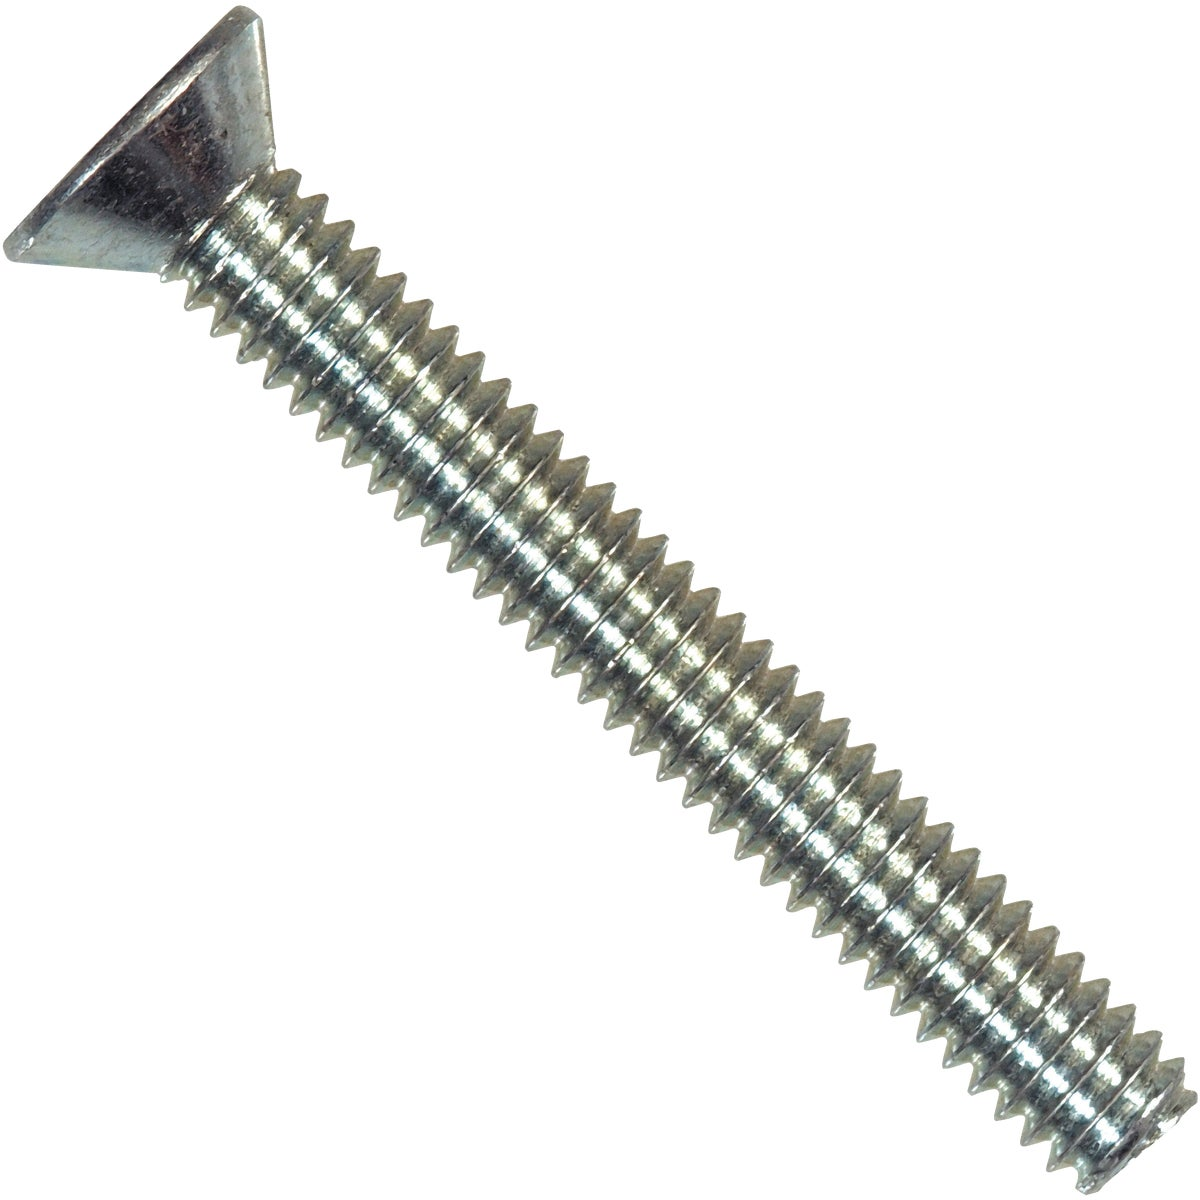 6-32X3/4 FH MACH SCREW - 101036 by Hillman Fastener